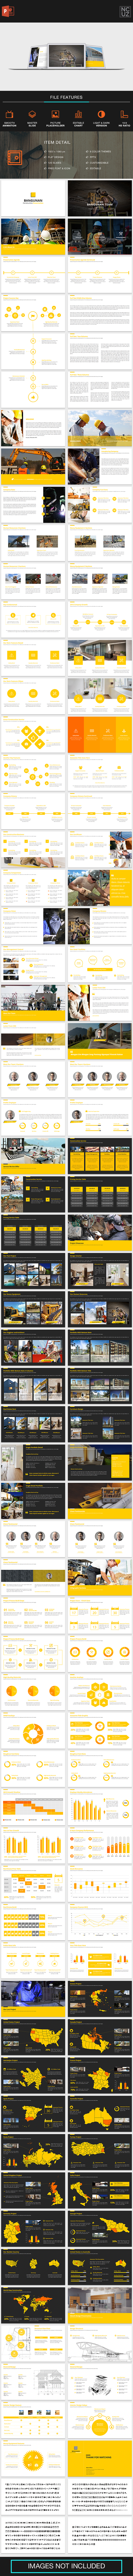 Construction PowerPoint Presentation - Business PowerPoint Templates